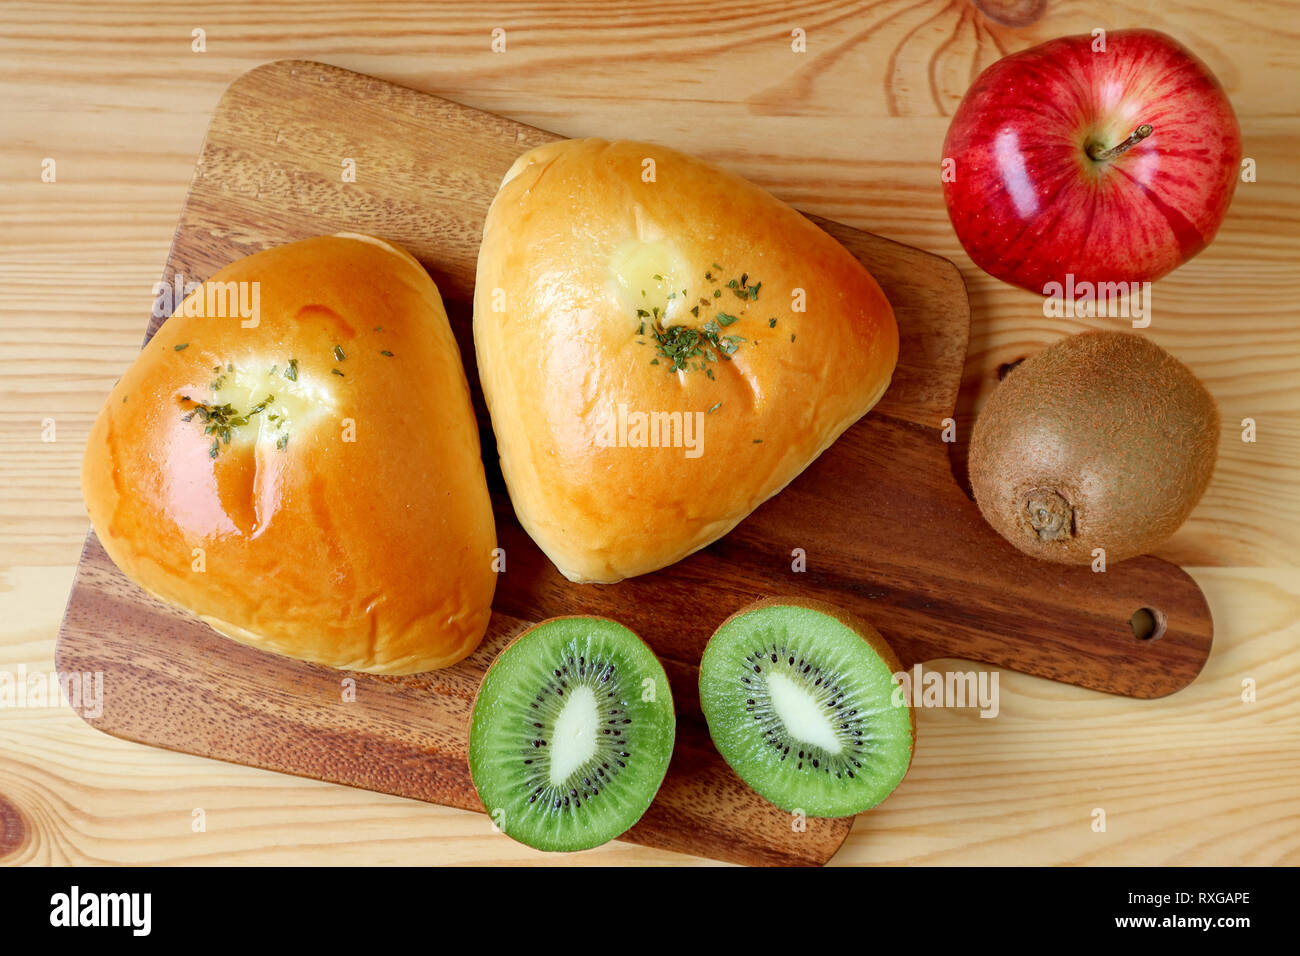 Top view of savory buns on wooden tray with apple and kiwi fruits - Stock Image